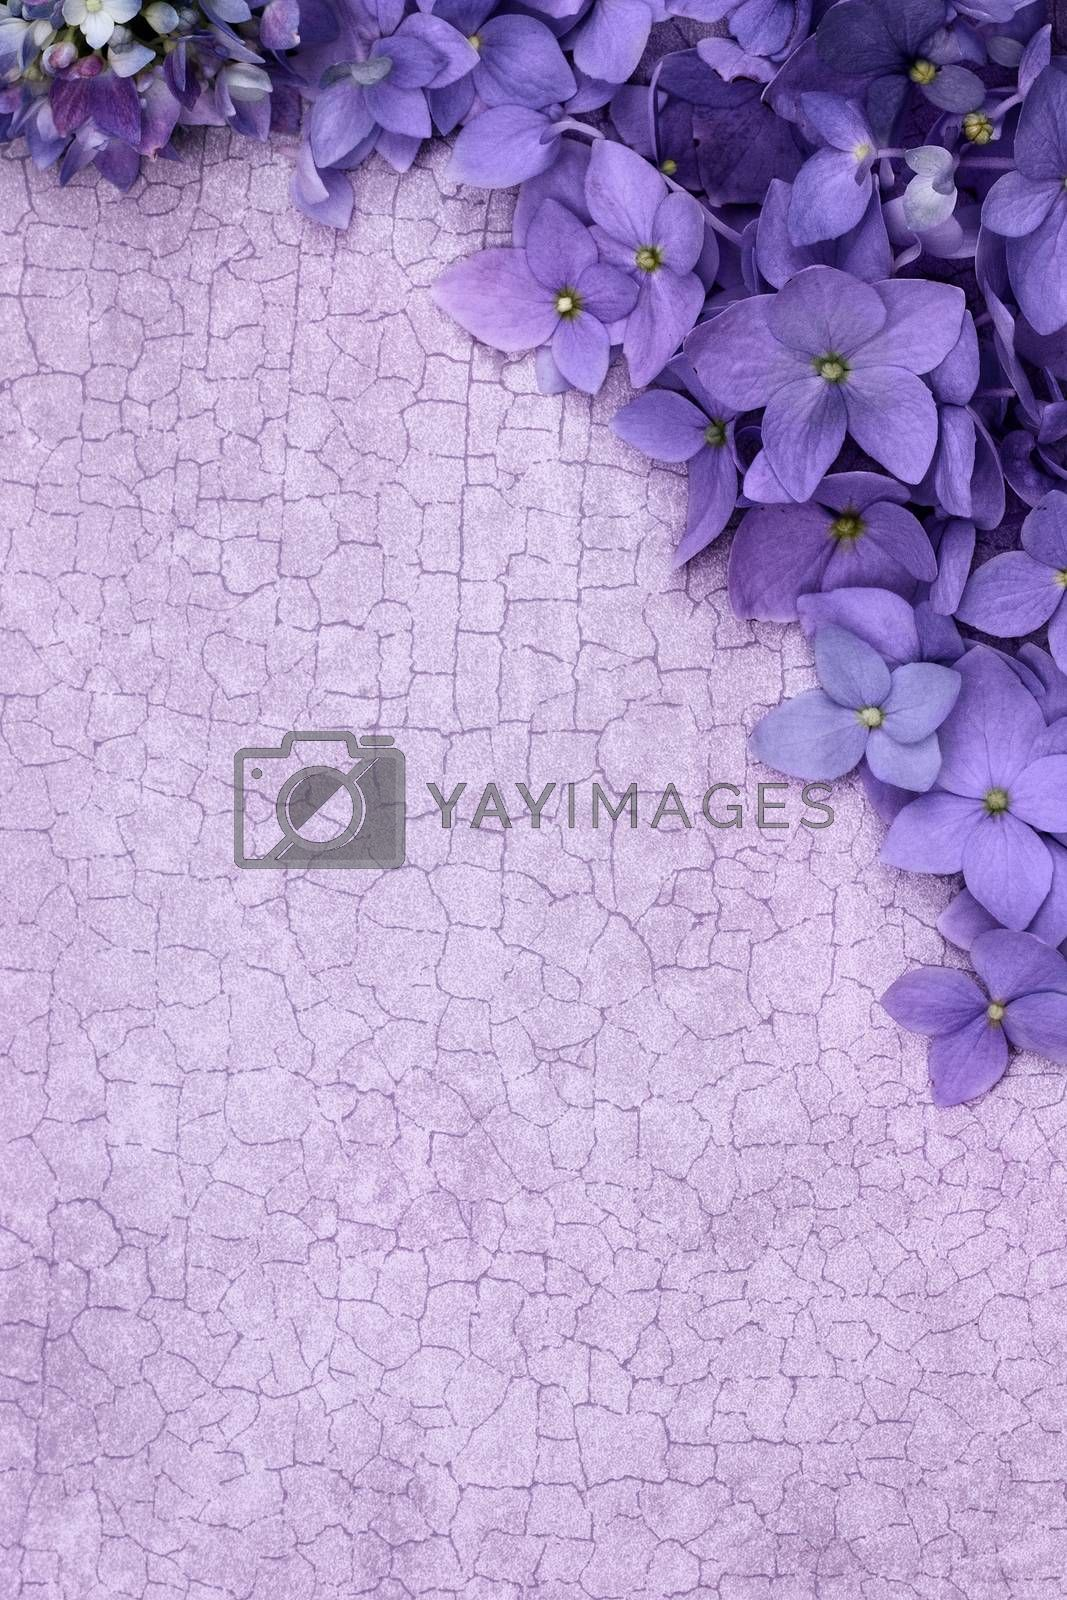 Royalty free image of Purple Floral Background by StephanieFrey